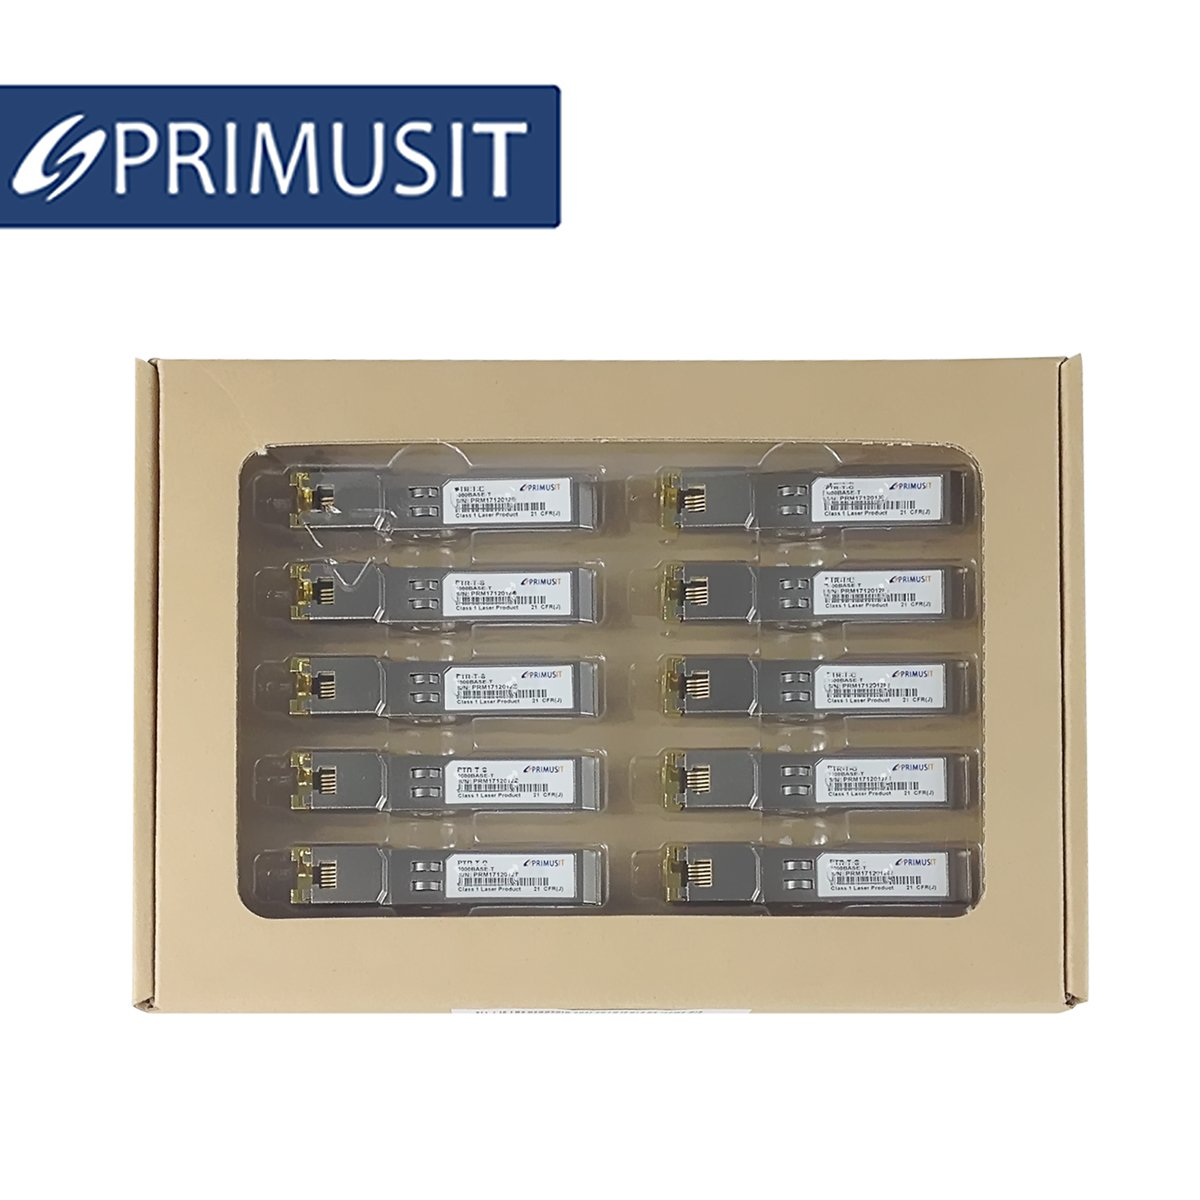 PRIMUSIT 10 Pack 100% Compatible Cisco GLC-T/SFP-GE-T, Gigabit RJ45 Copper SFP, 1000Base-T Transceiver Module by PRIMUSIT